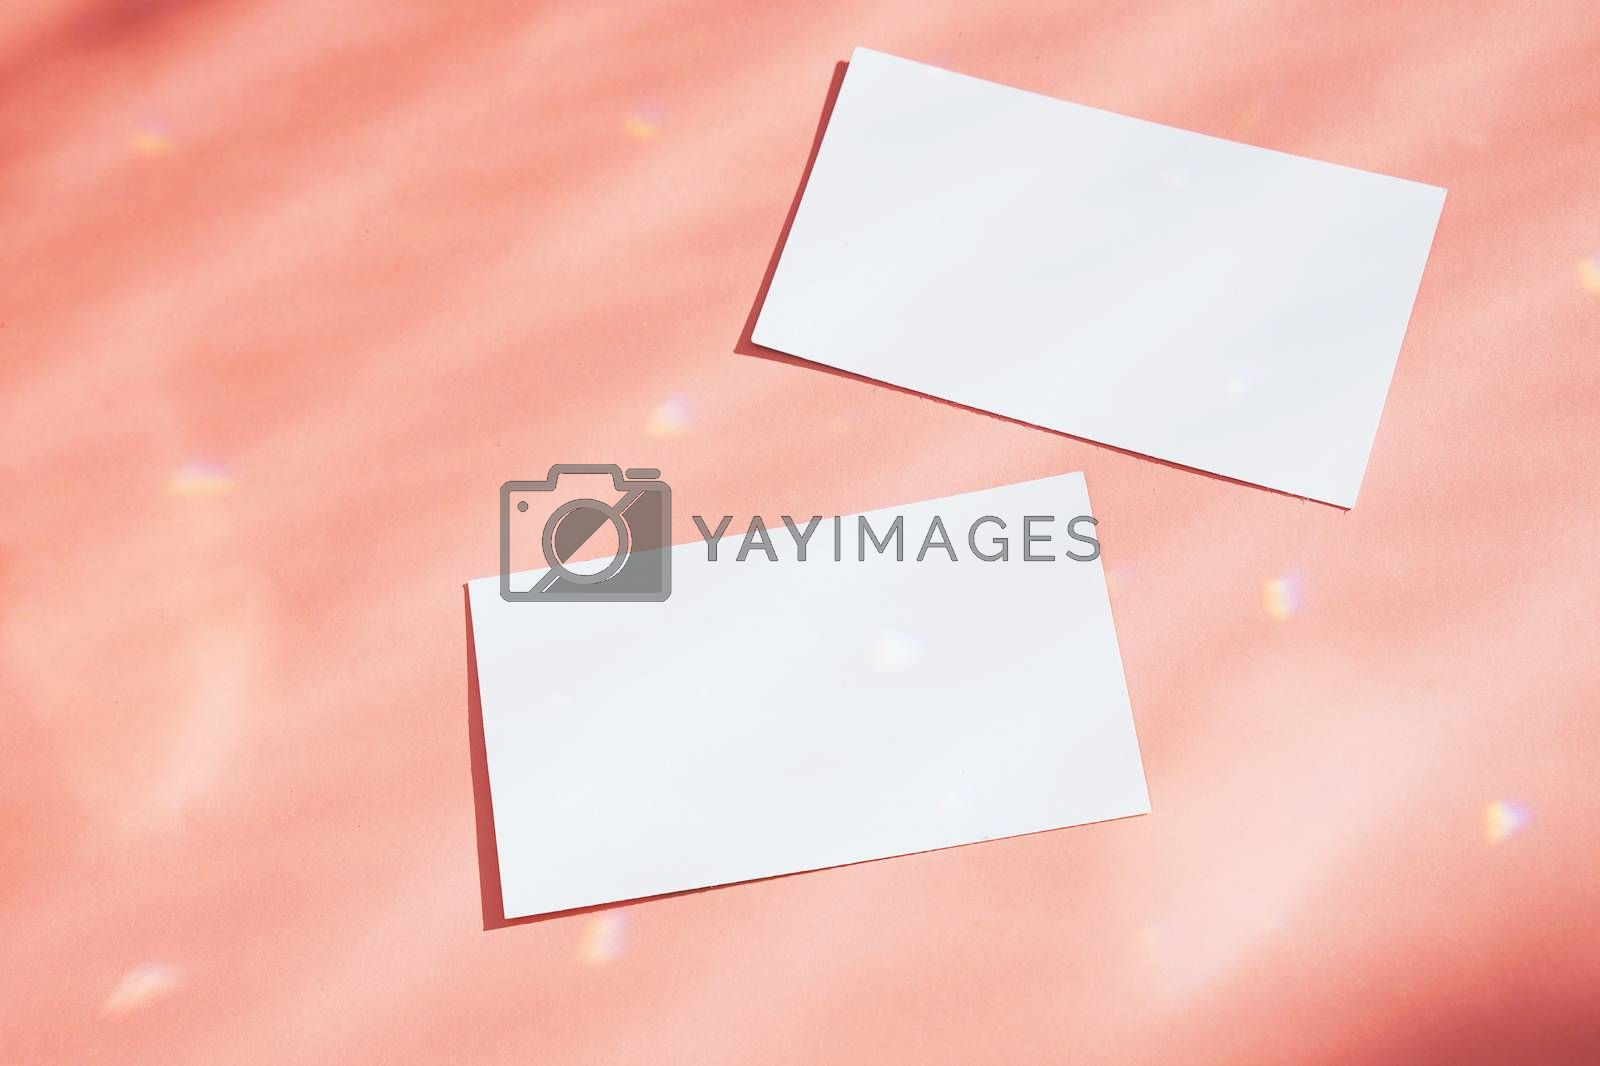 Flat lay of branding identity business name card on orange background with sparkle light and shadow, minimal design